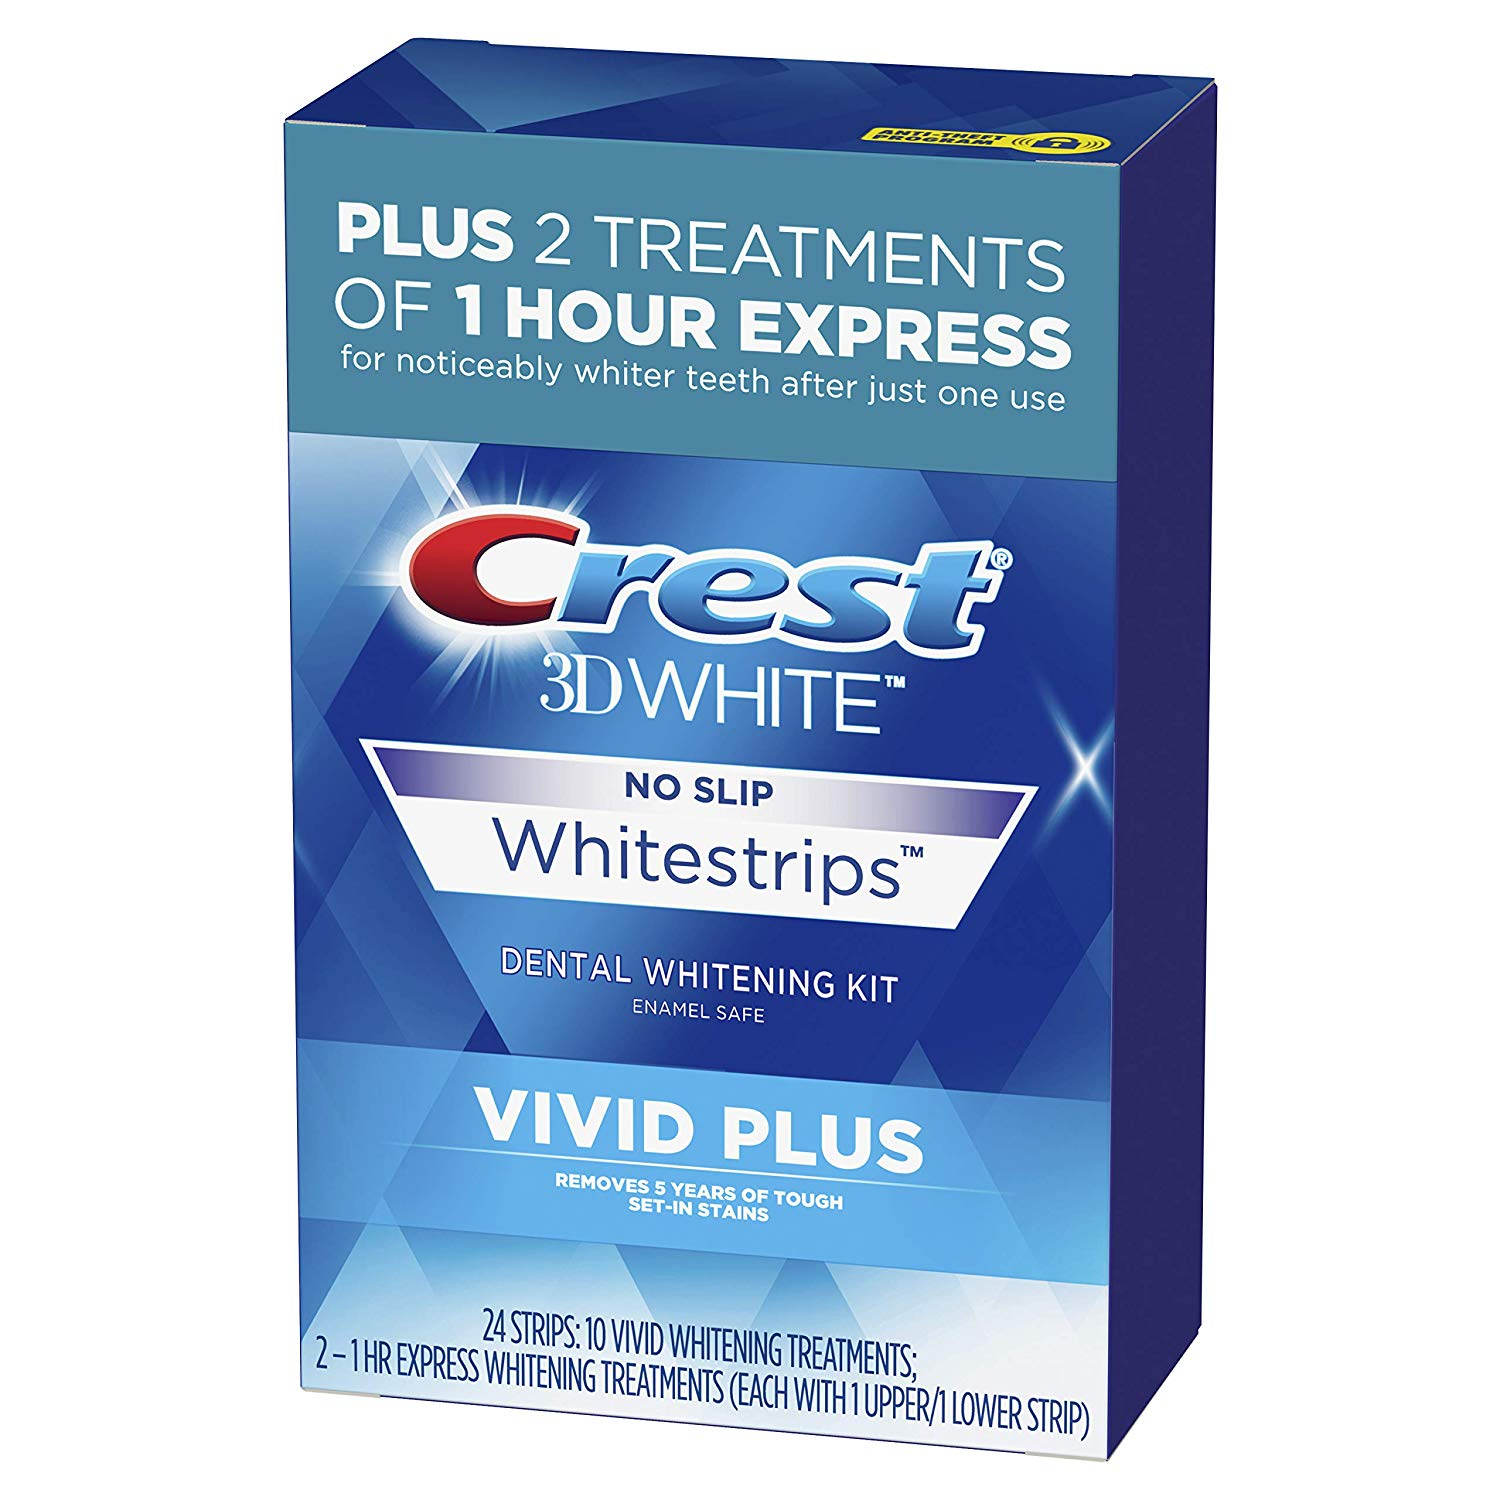 Crest 3D White Whitestrips Vivid Plus Teeth Whitening Kit